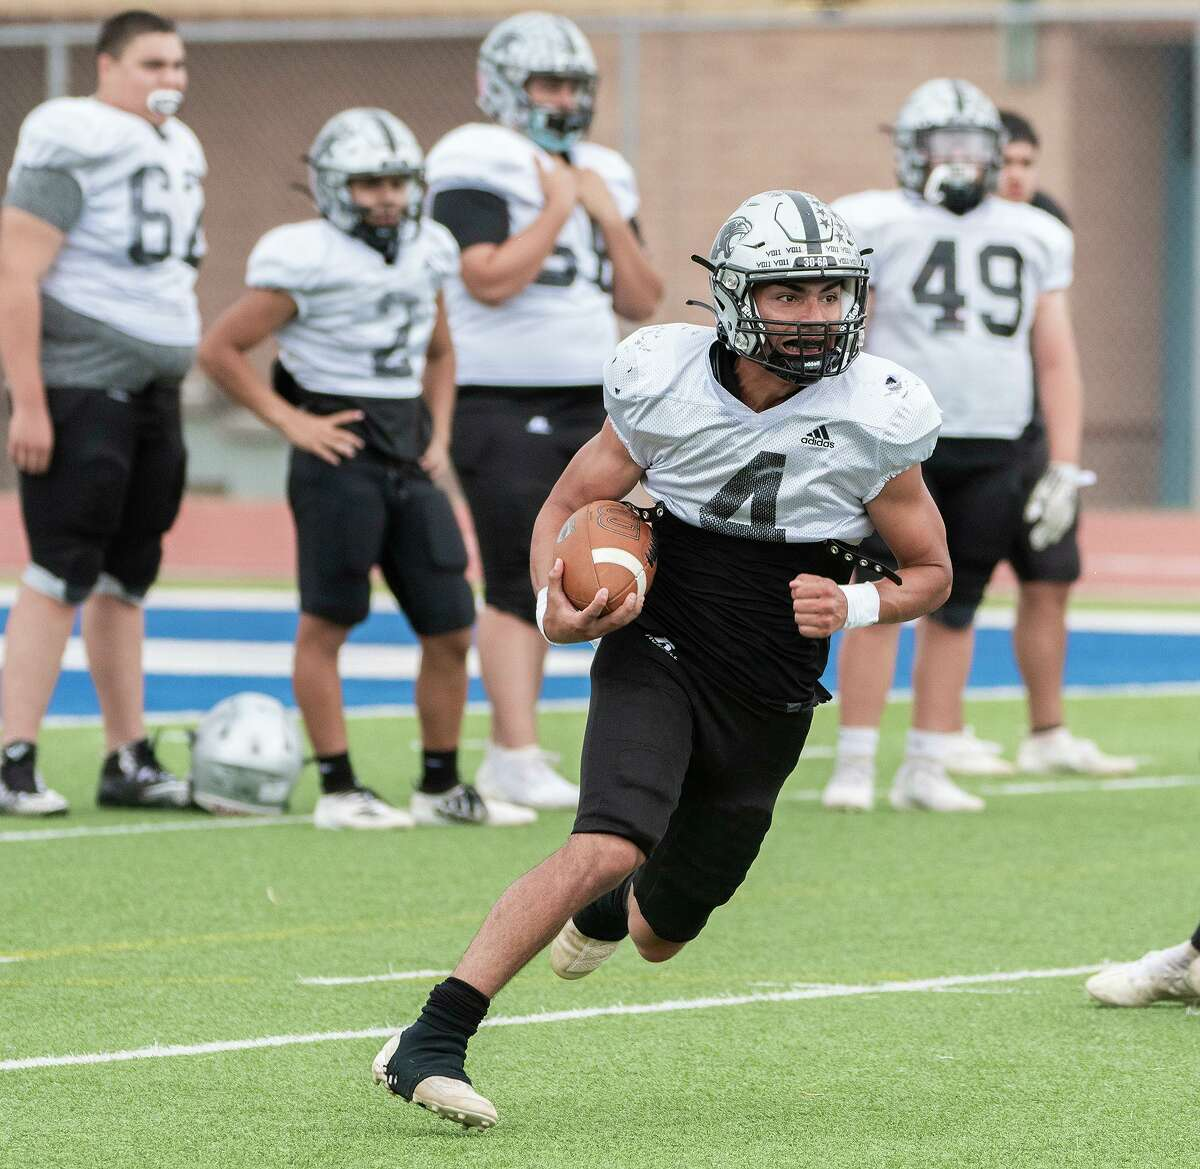 United South opens pool play in the the Texas 7-on-7 State Championships on Friday in College Station.